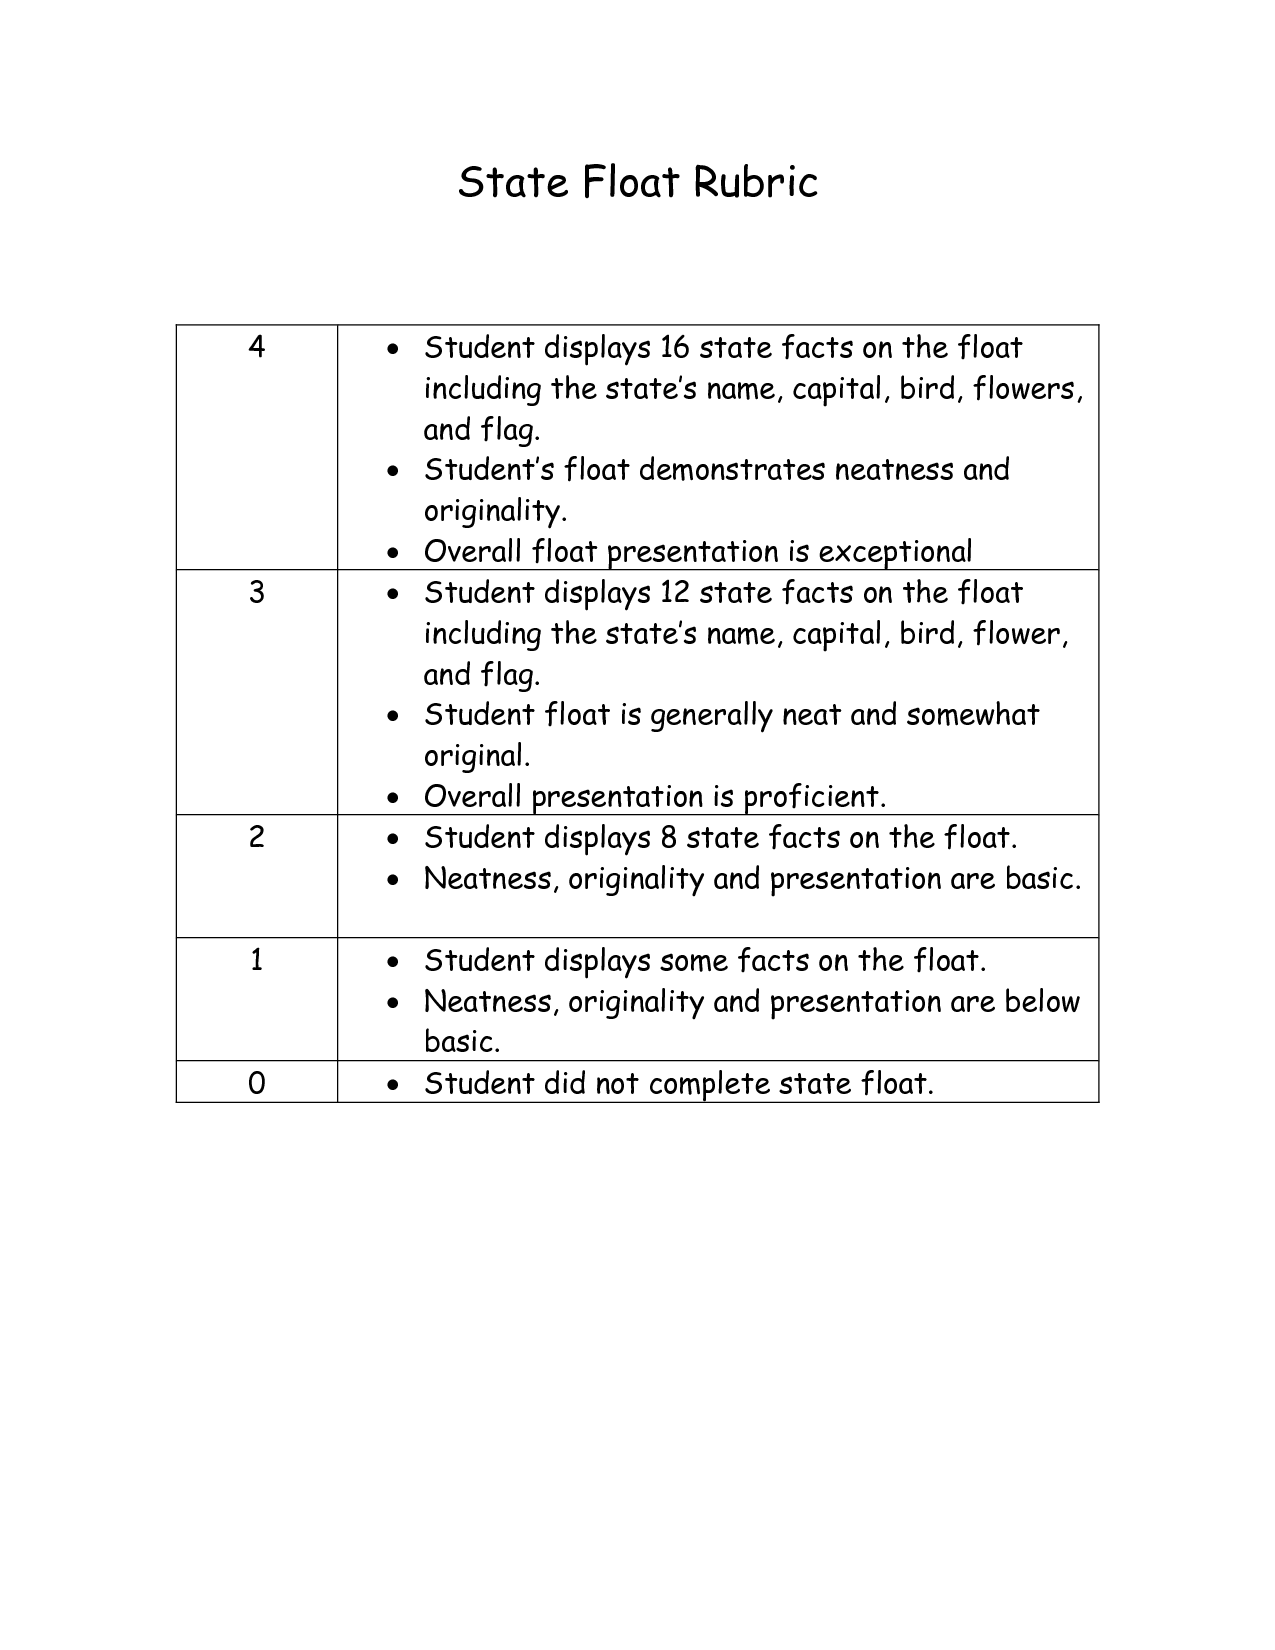 rubric template for state float project